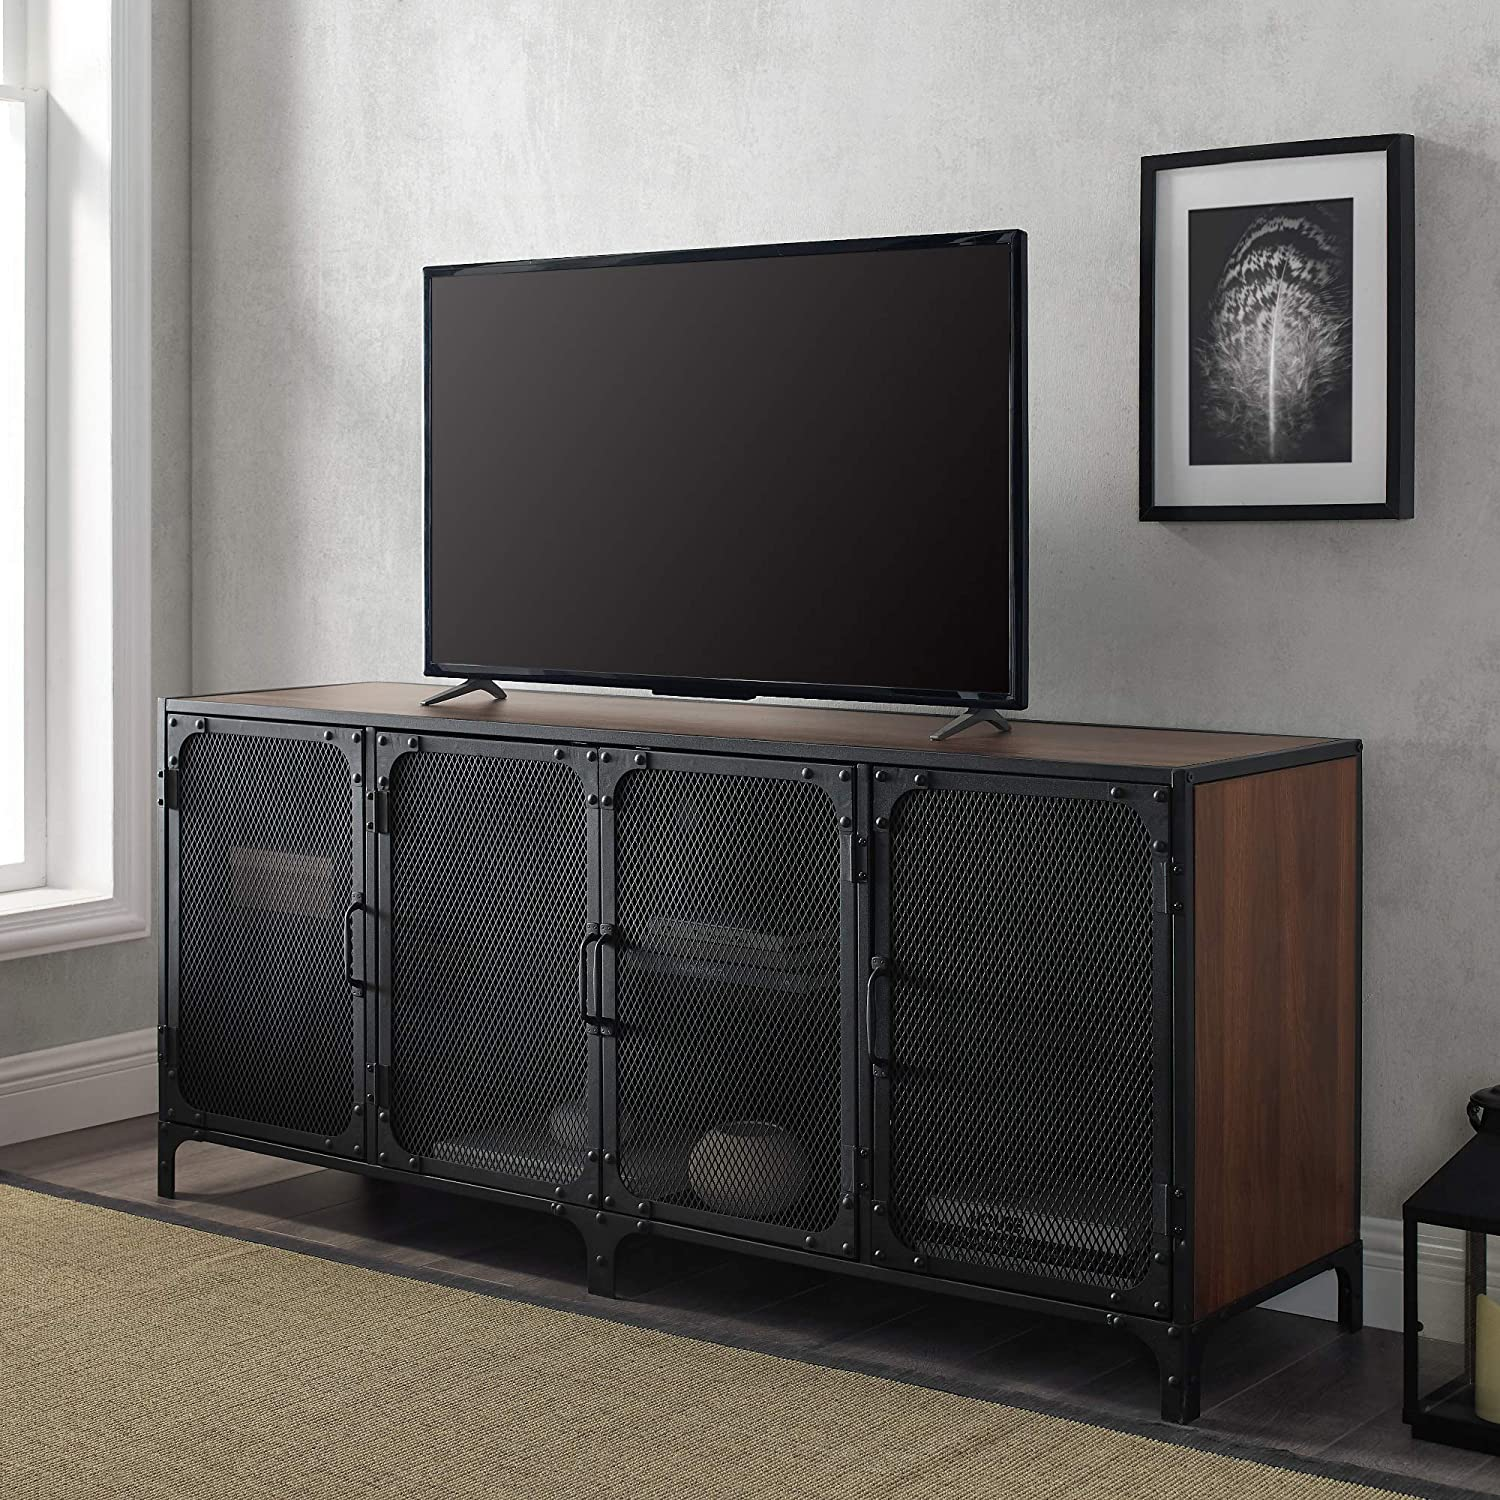 "Walker Edison Industrial Metal Mesh Universal Stand with Cabinet Doors TV's up to 64"" Flat Screen Living Room Storage Entertainment Center, 60 Inch, Dark Walnut"